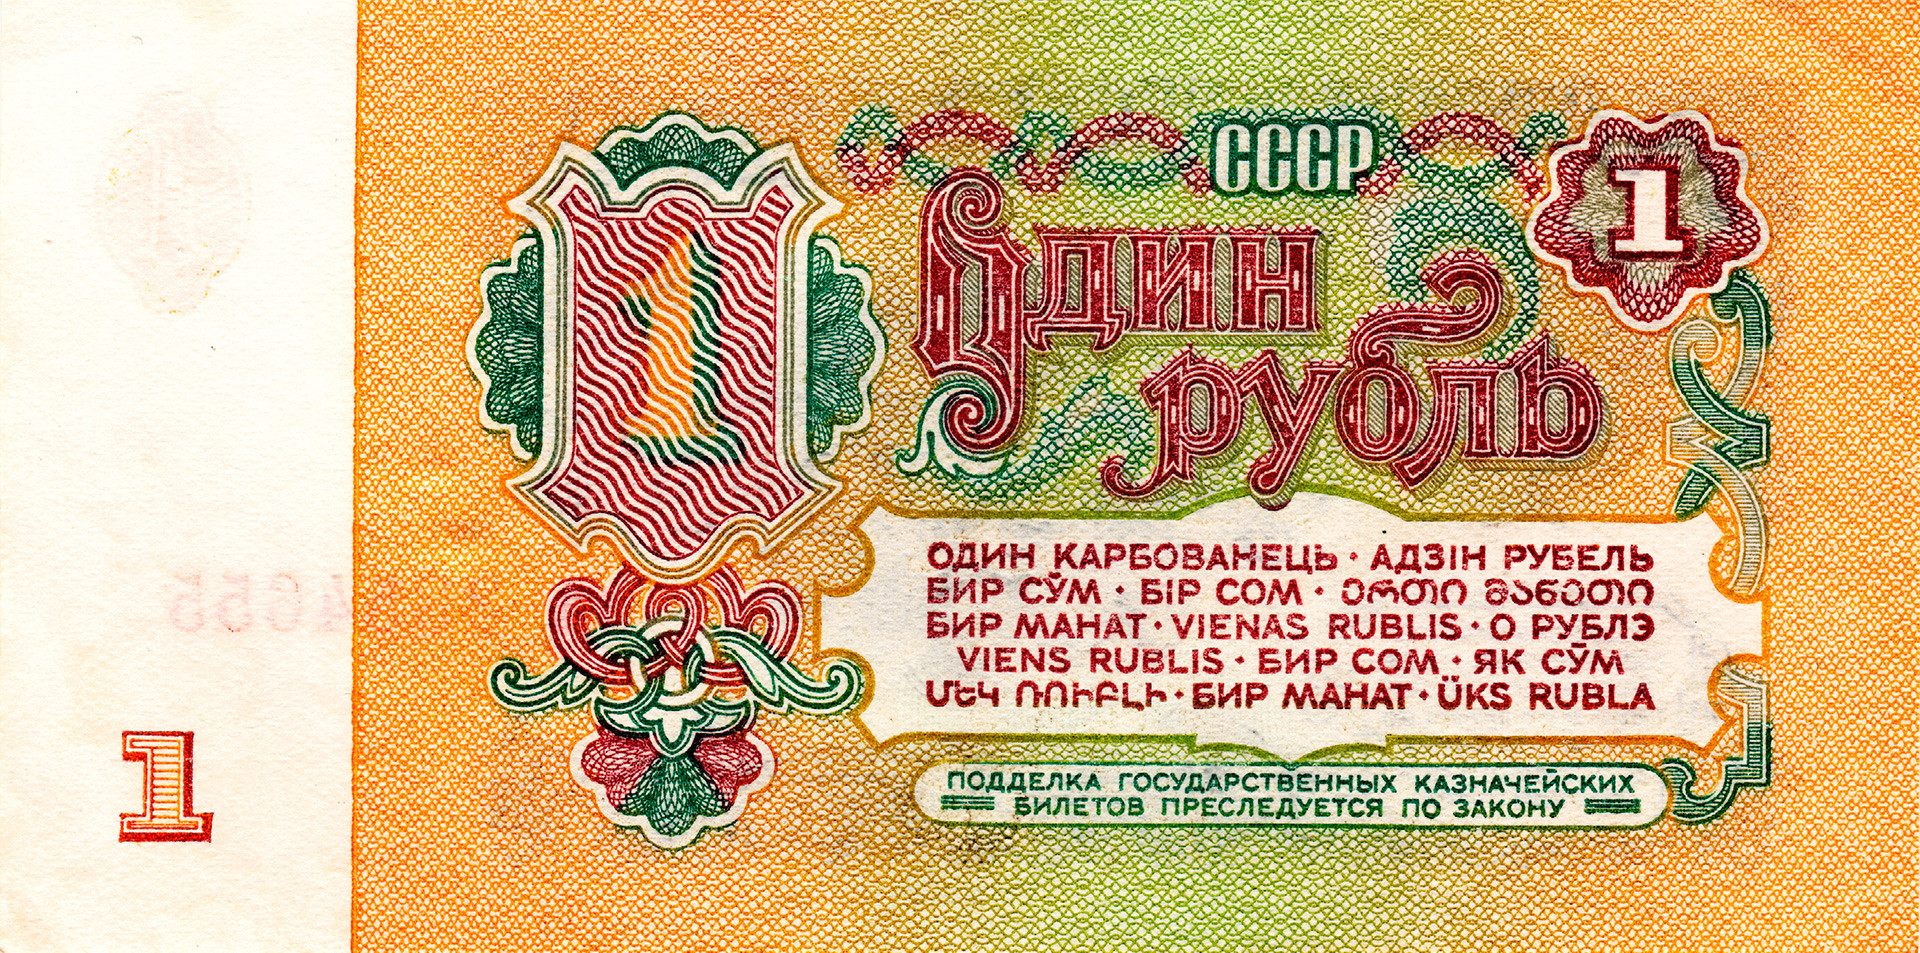 A 1-ruble banknote with translation in all the official languages of the USSR